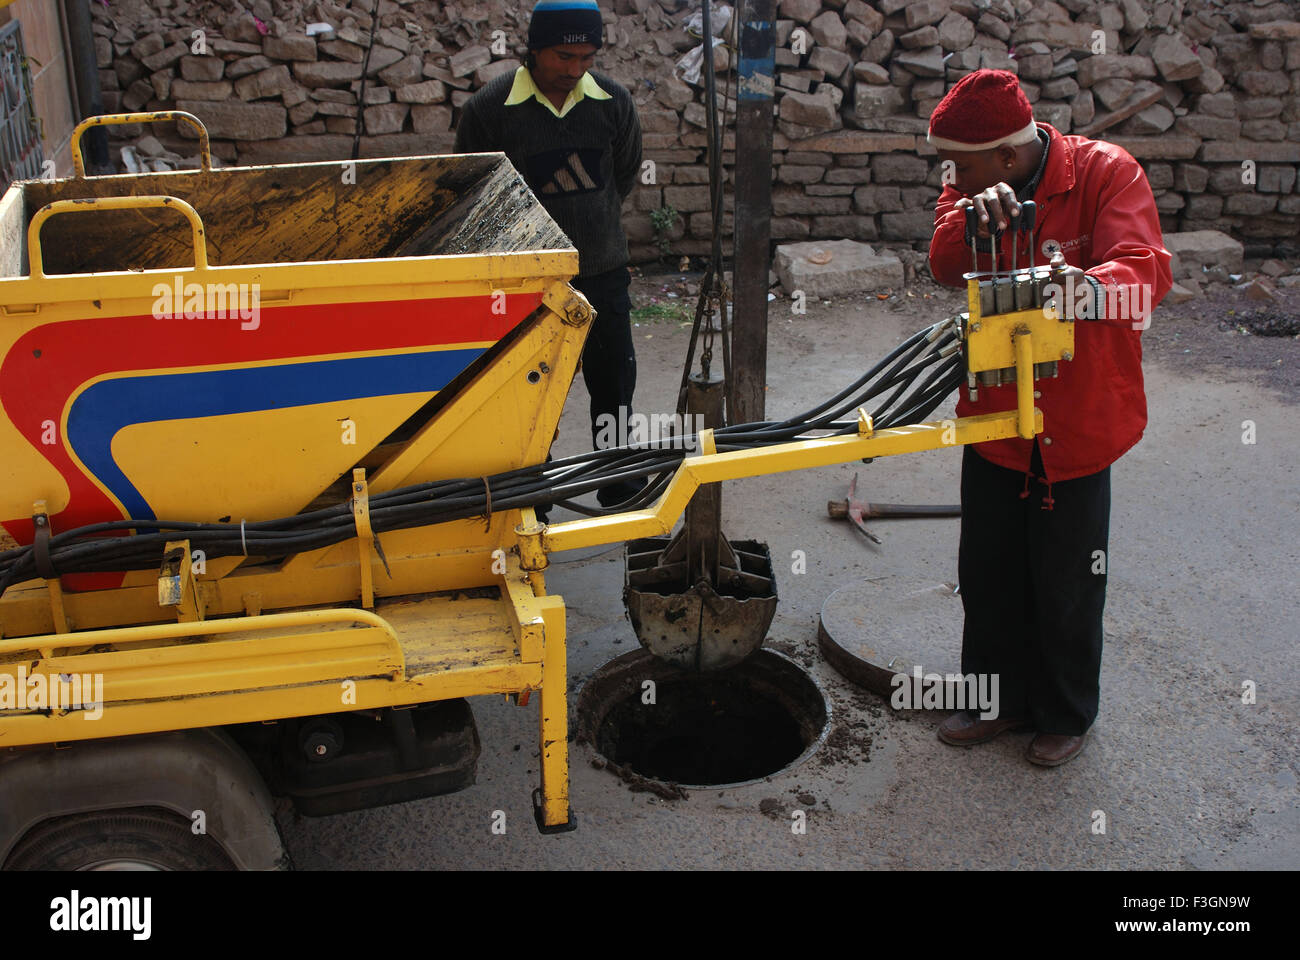 Sewage Cleaner Sewer Cleaning Stock Photos Sewer Cleaning Stock Images Alamy